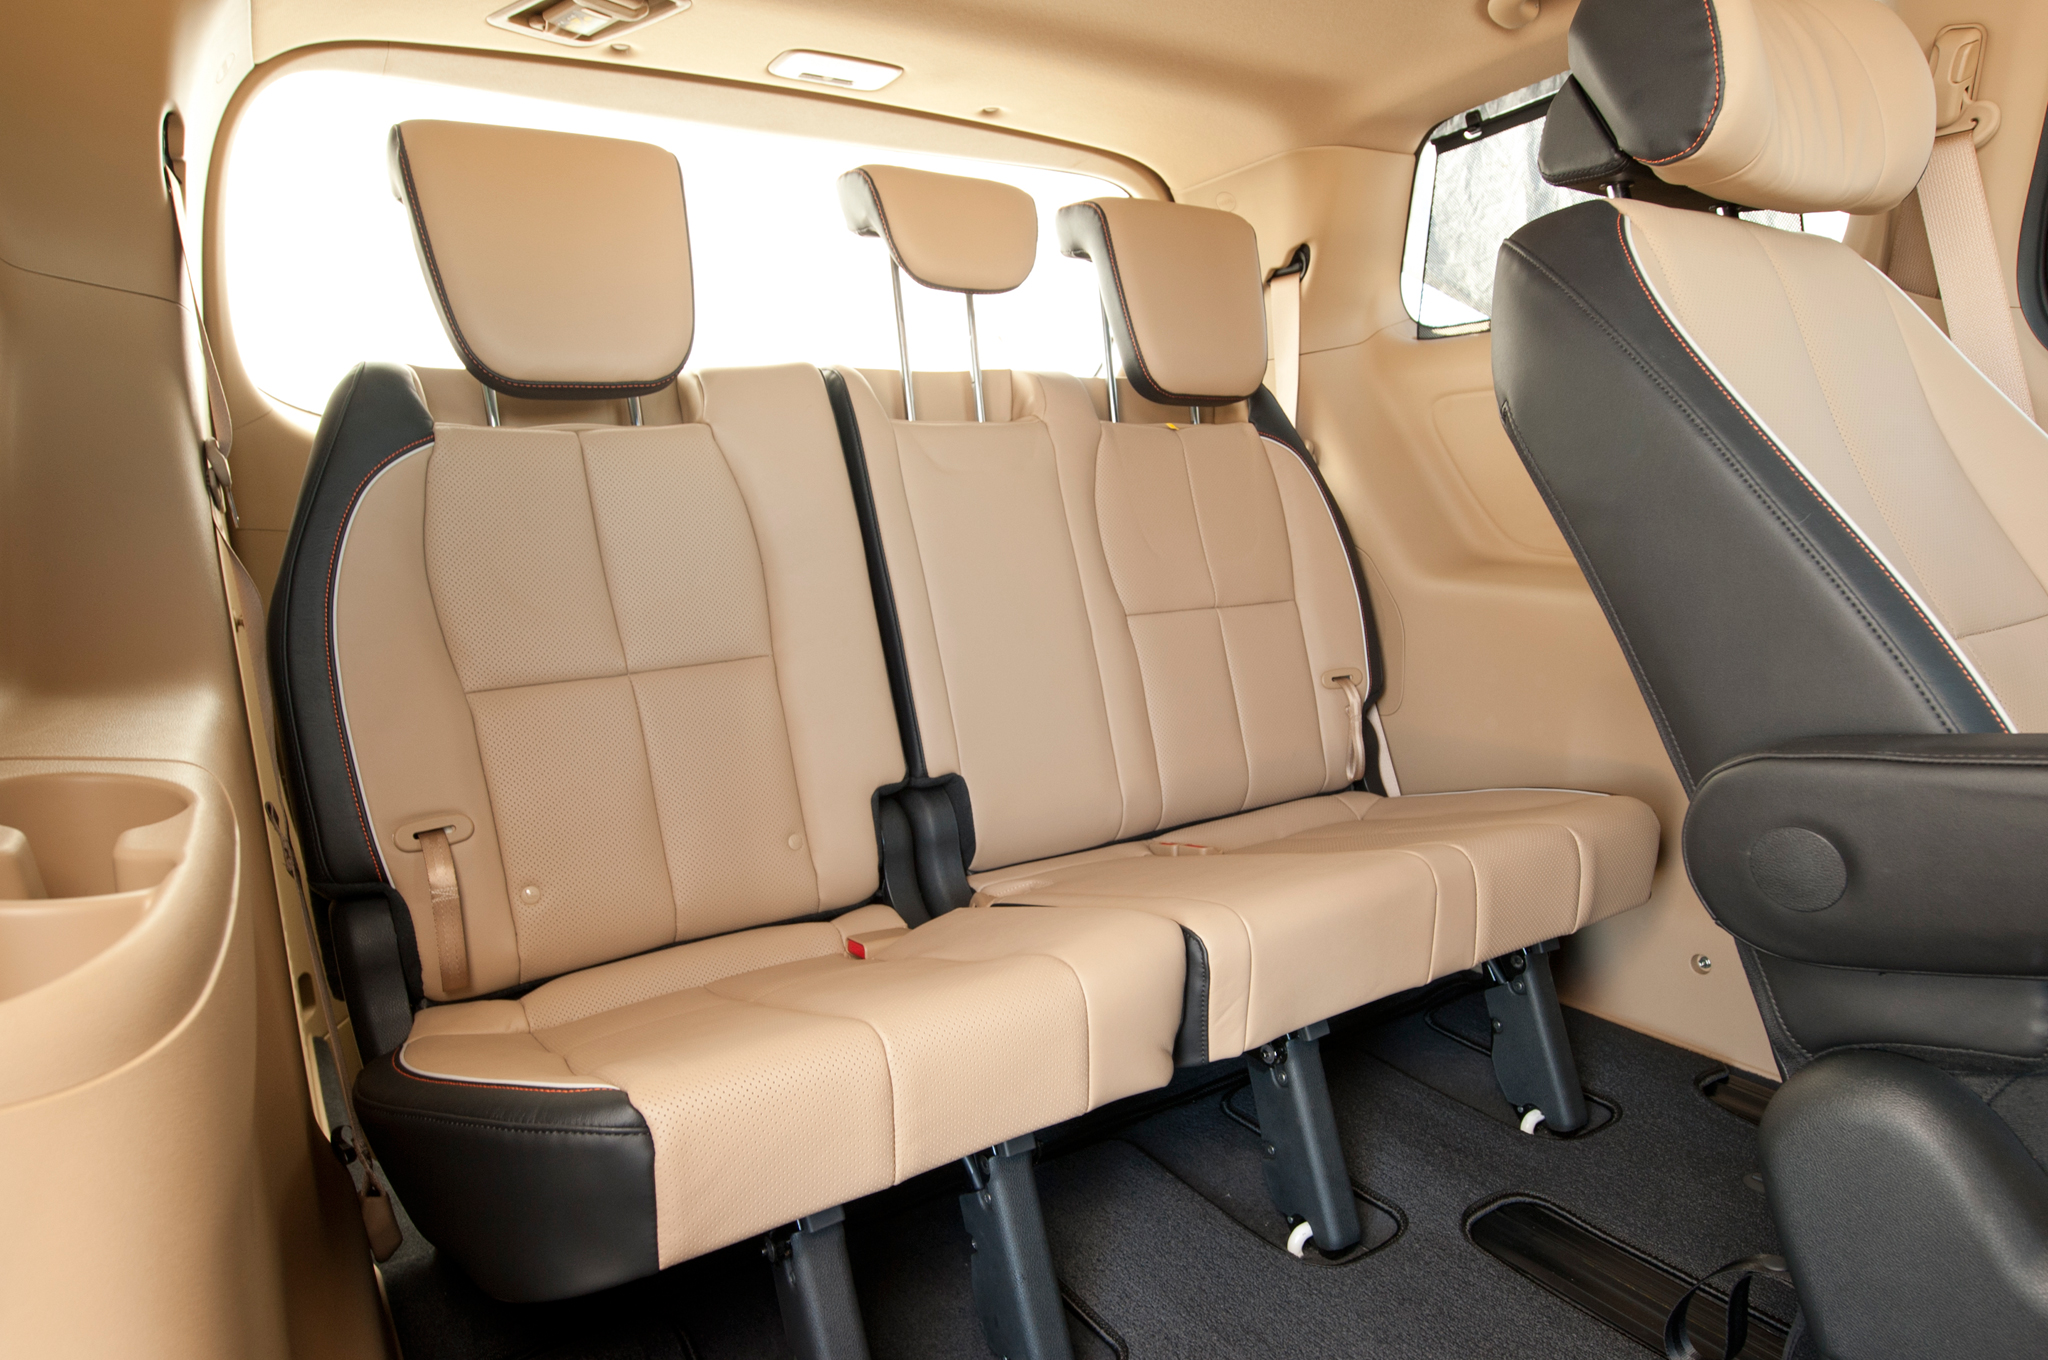 New 2015 Kia Sedona Rear Seats